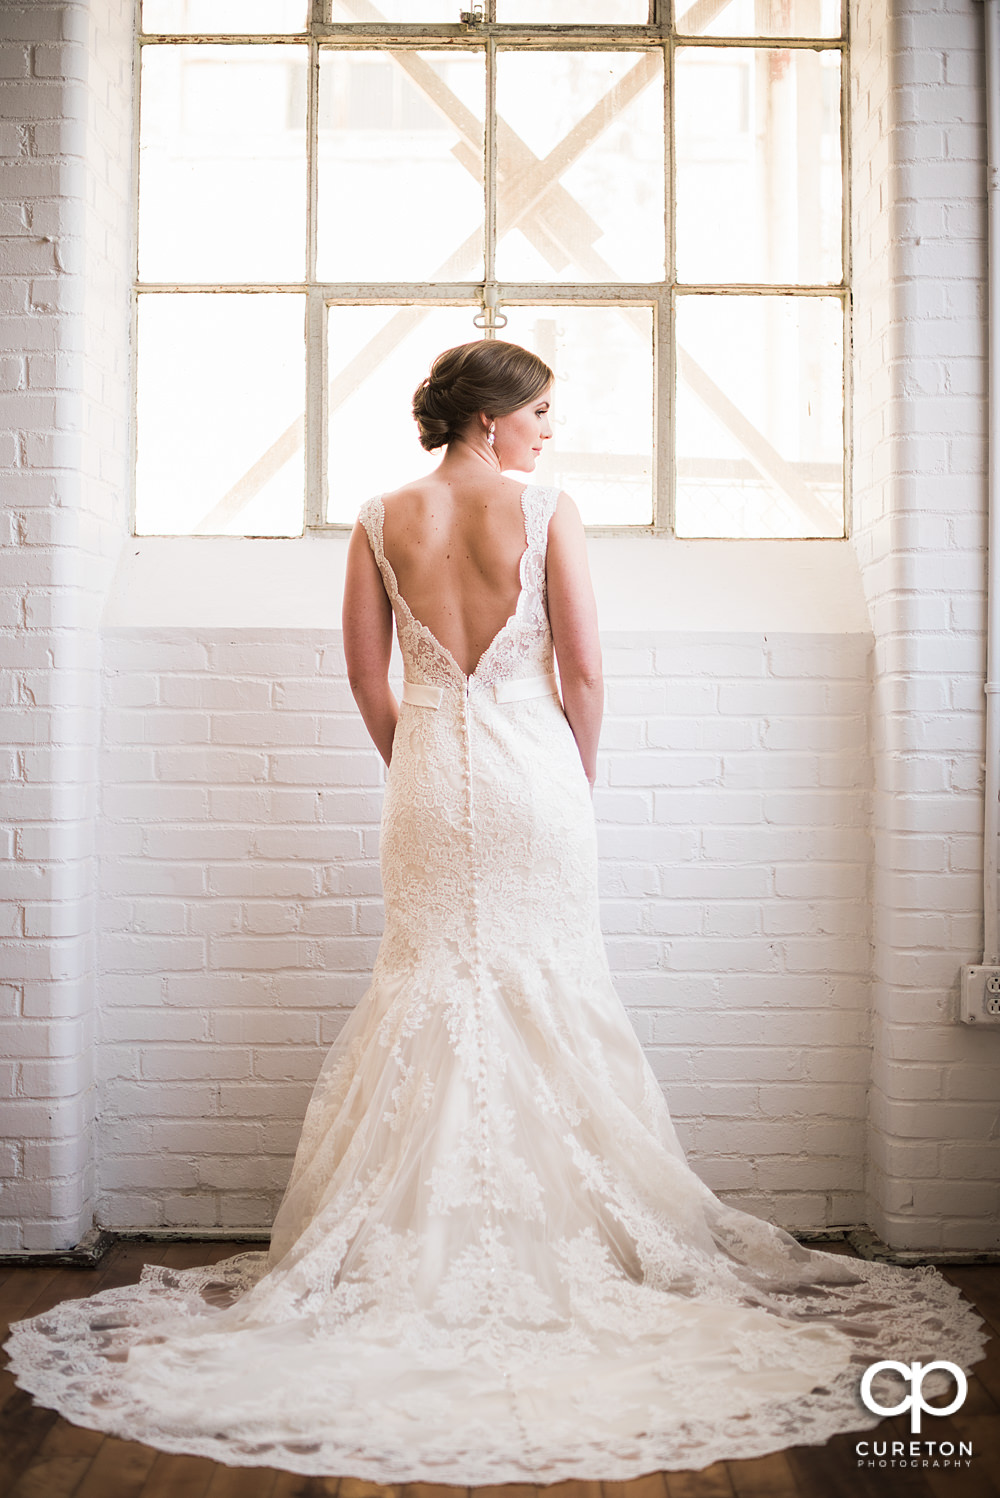 Teh back of the brides dress during her bridal session at Southern Bleachery.